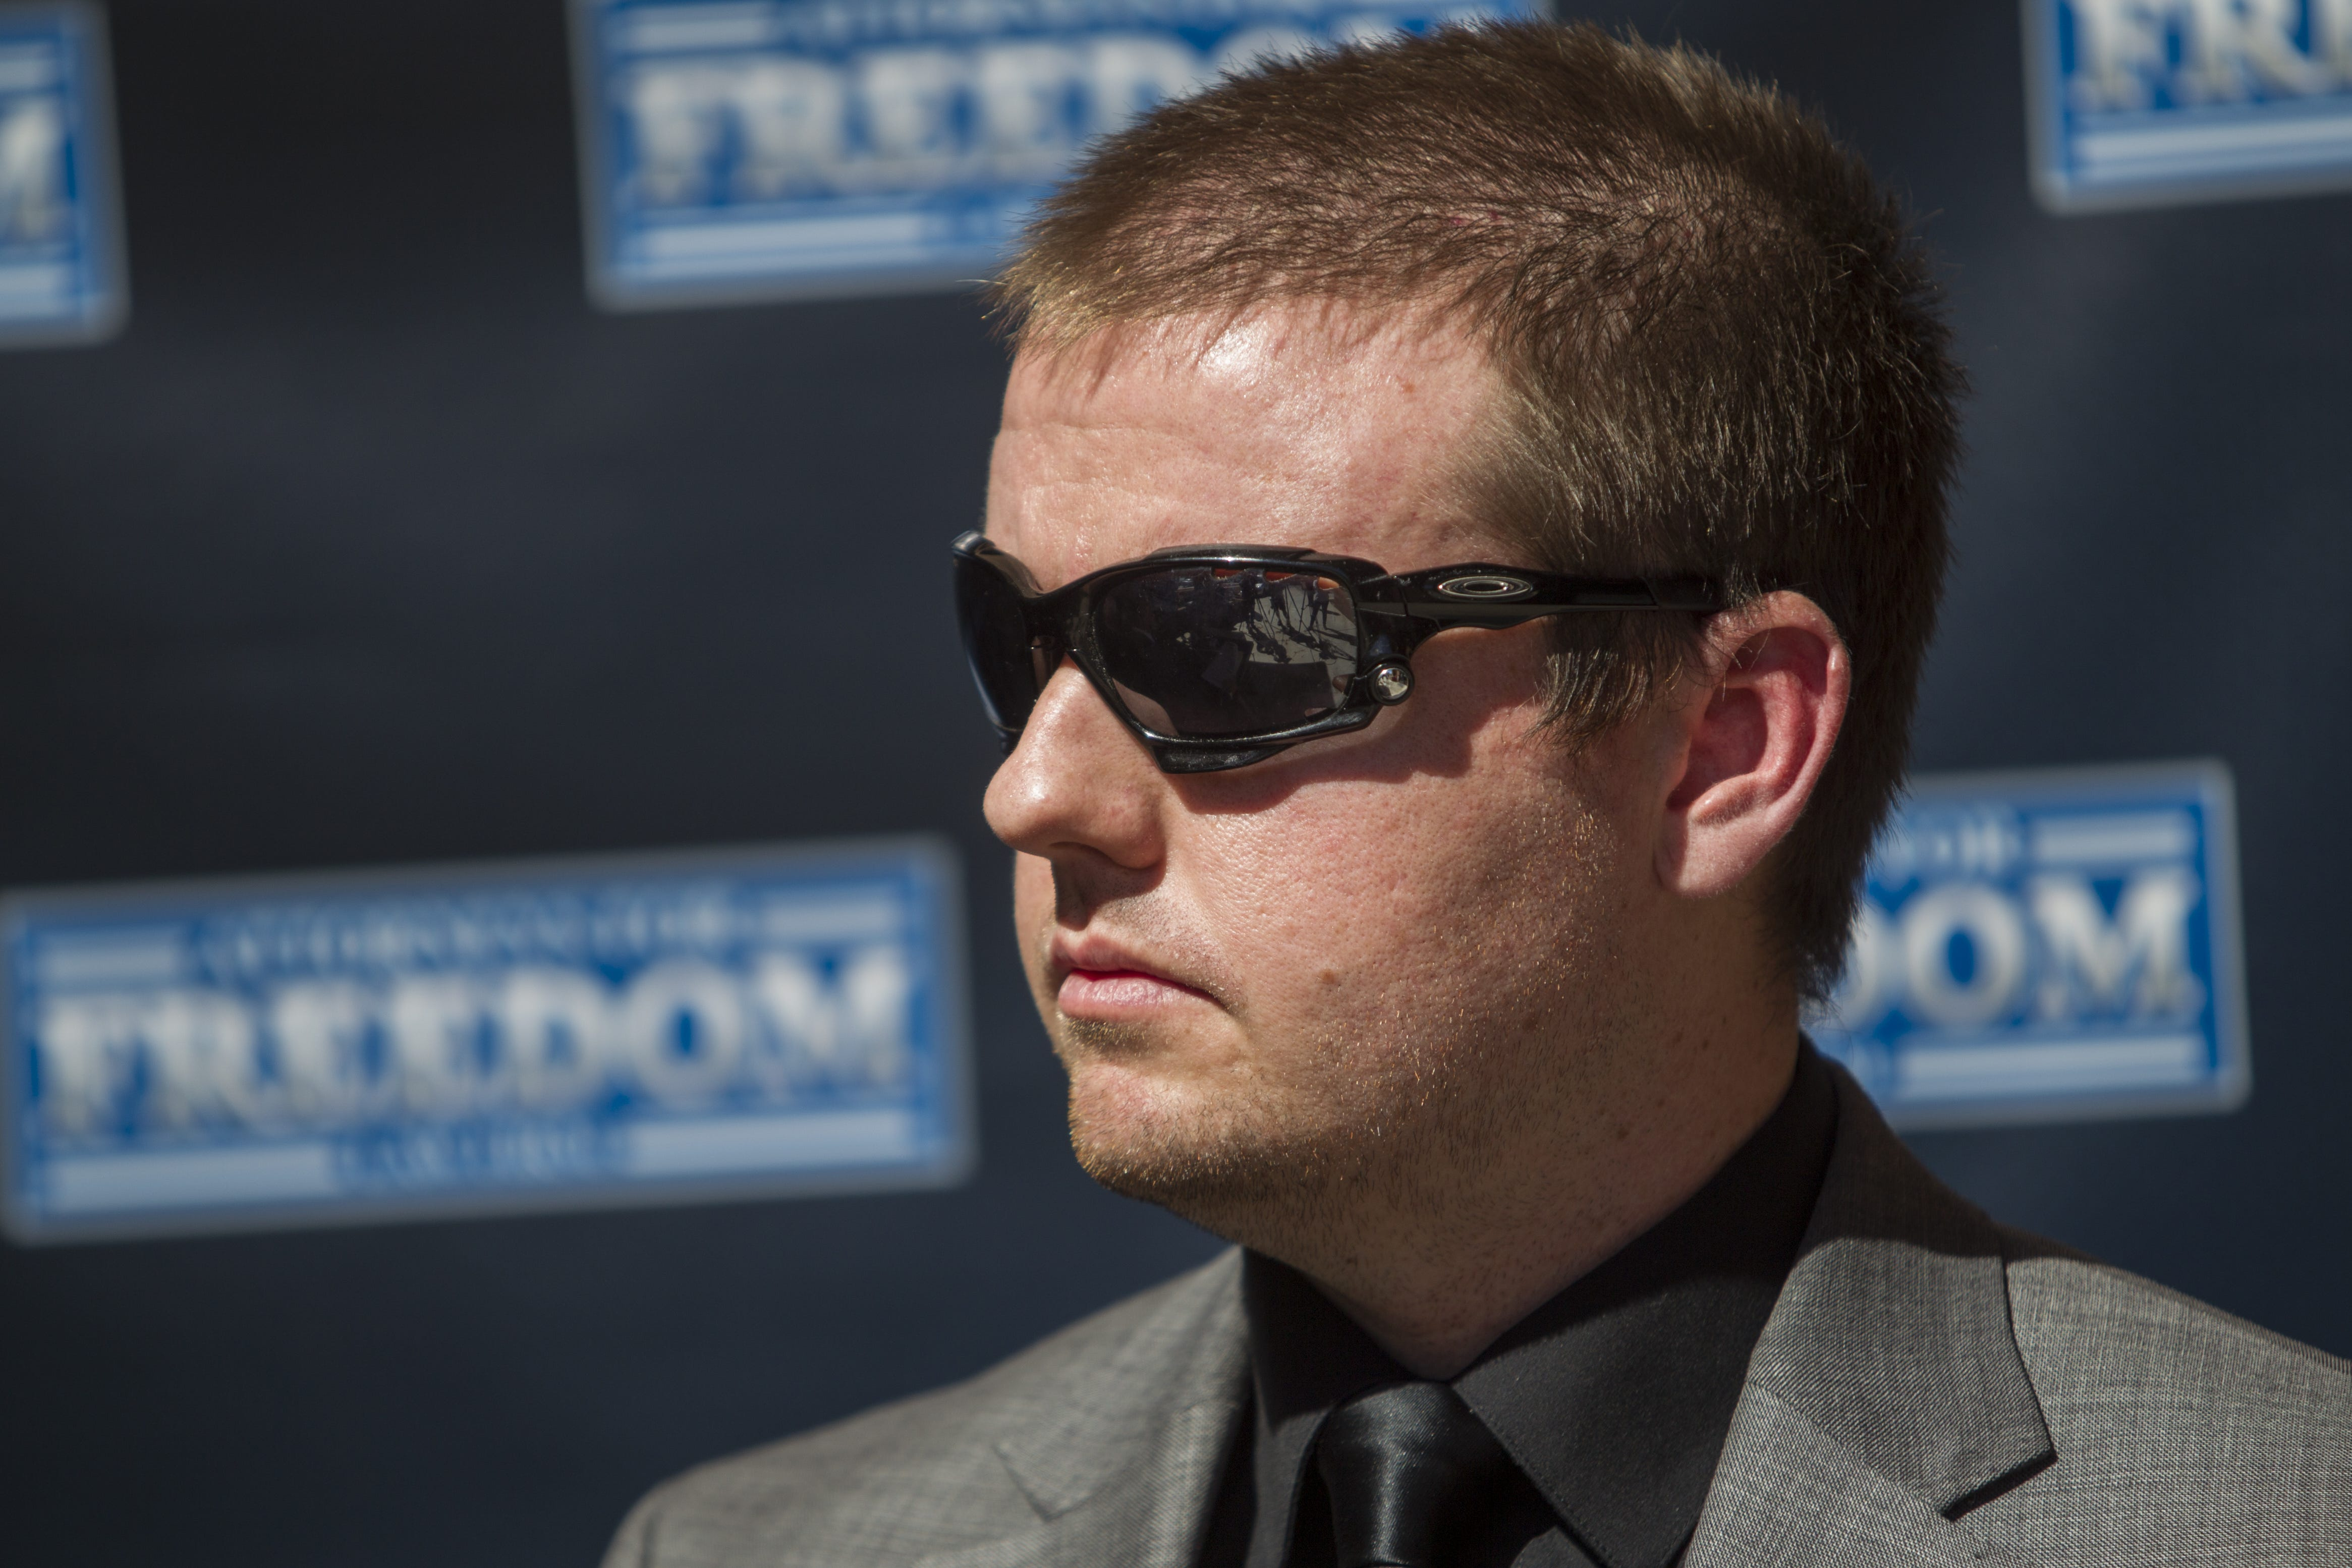 Ex Flagstaff Officer Who Punched Woman Surrenders Peace Officer